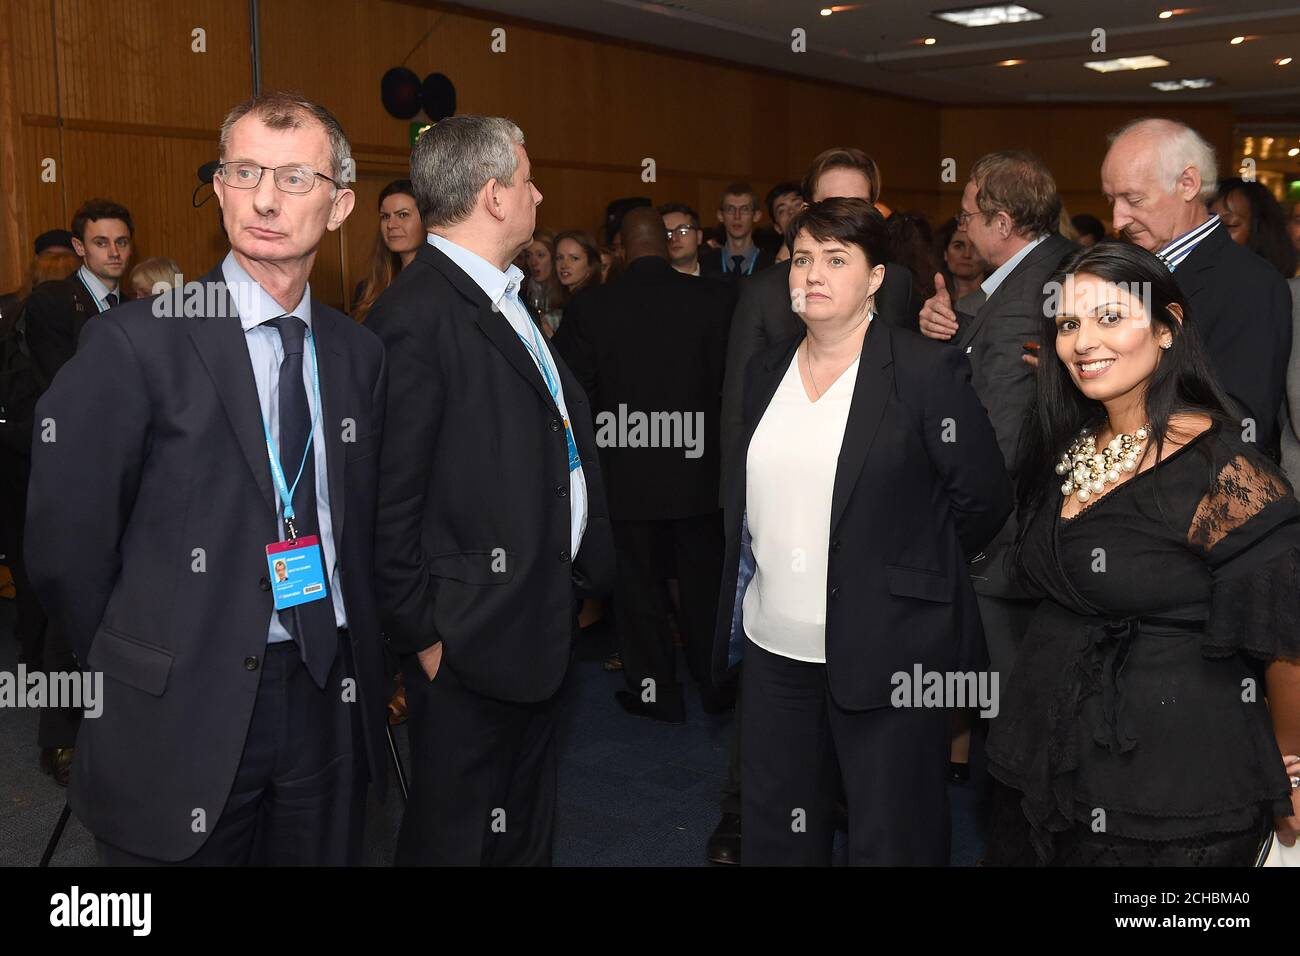 Kevin Watkins Paul Goodman Ruth Davidson And Priti Patel And Guests At The Save The Children Evening Reception At The Conservative Party Conference Stock Photo Alamy